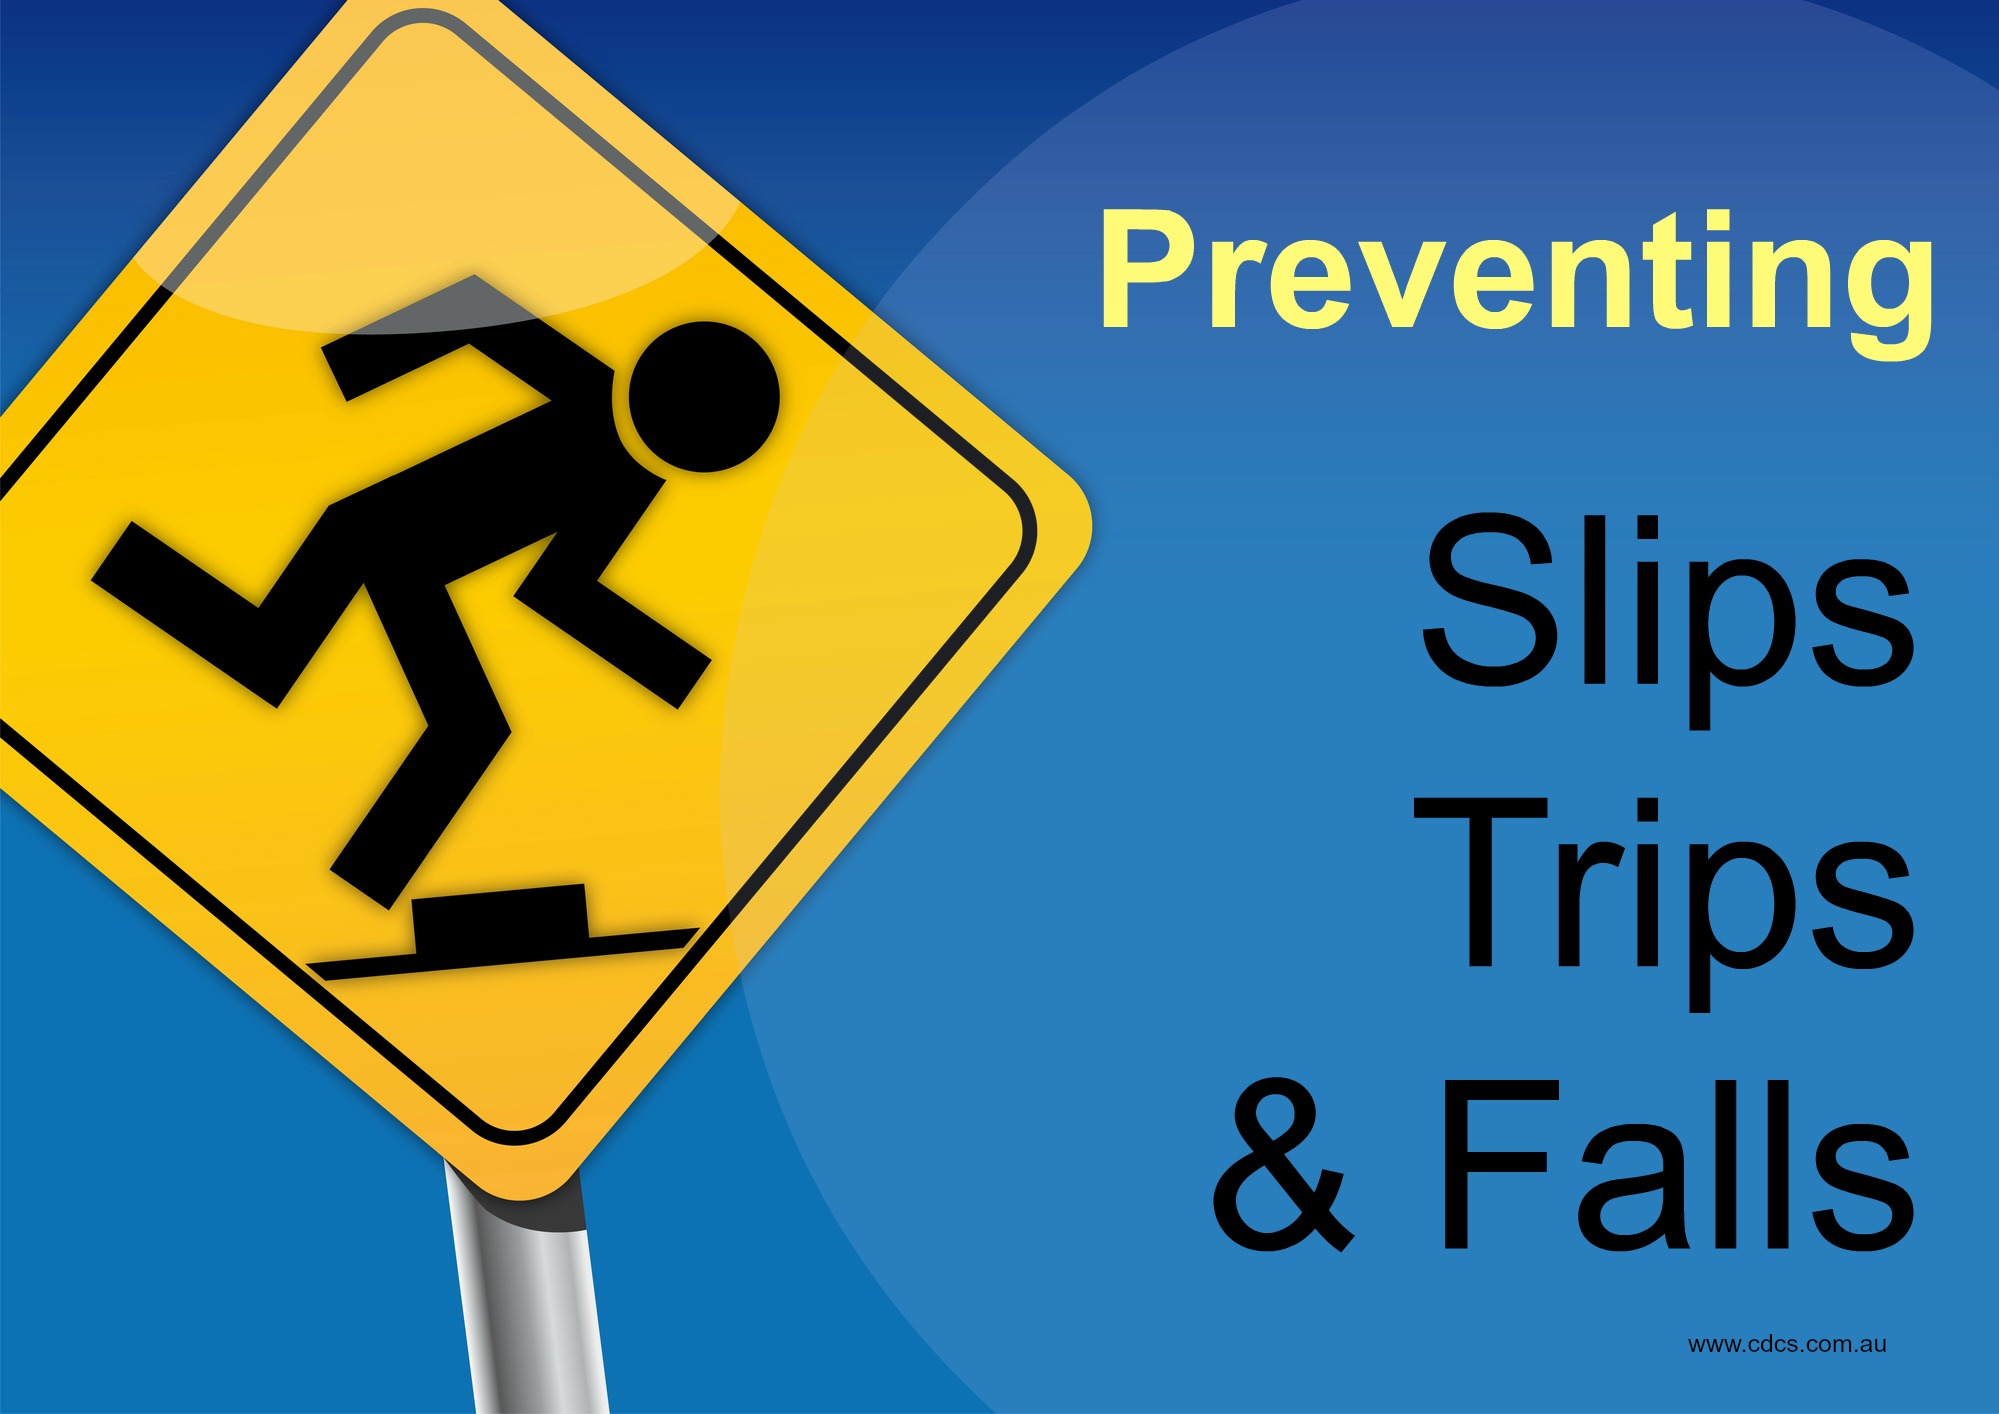 Preventing slips, trips and falls in older people can be as simple as making a few changes to the home environment.